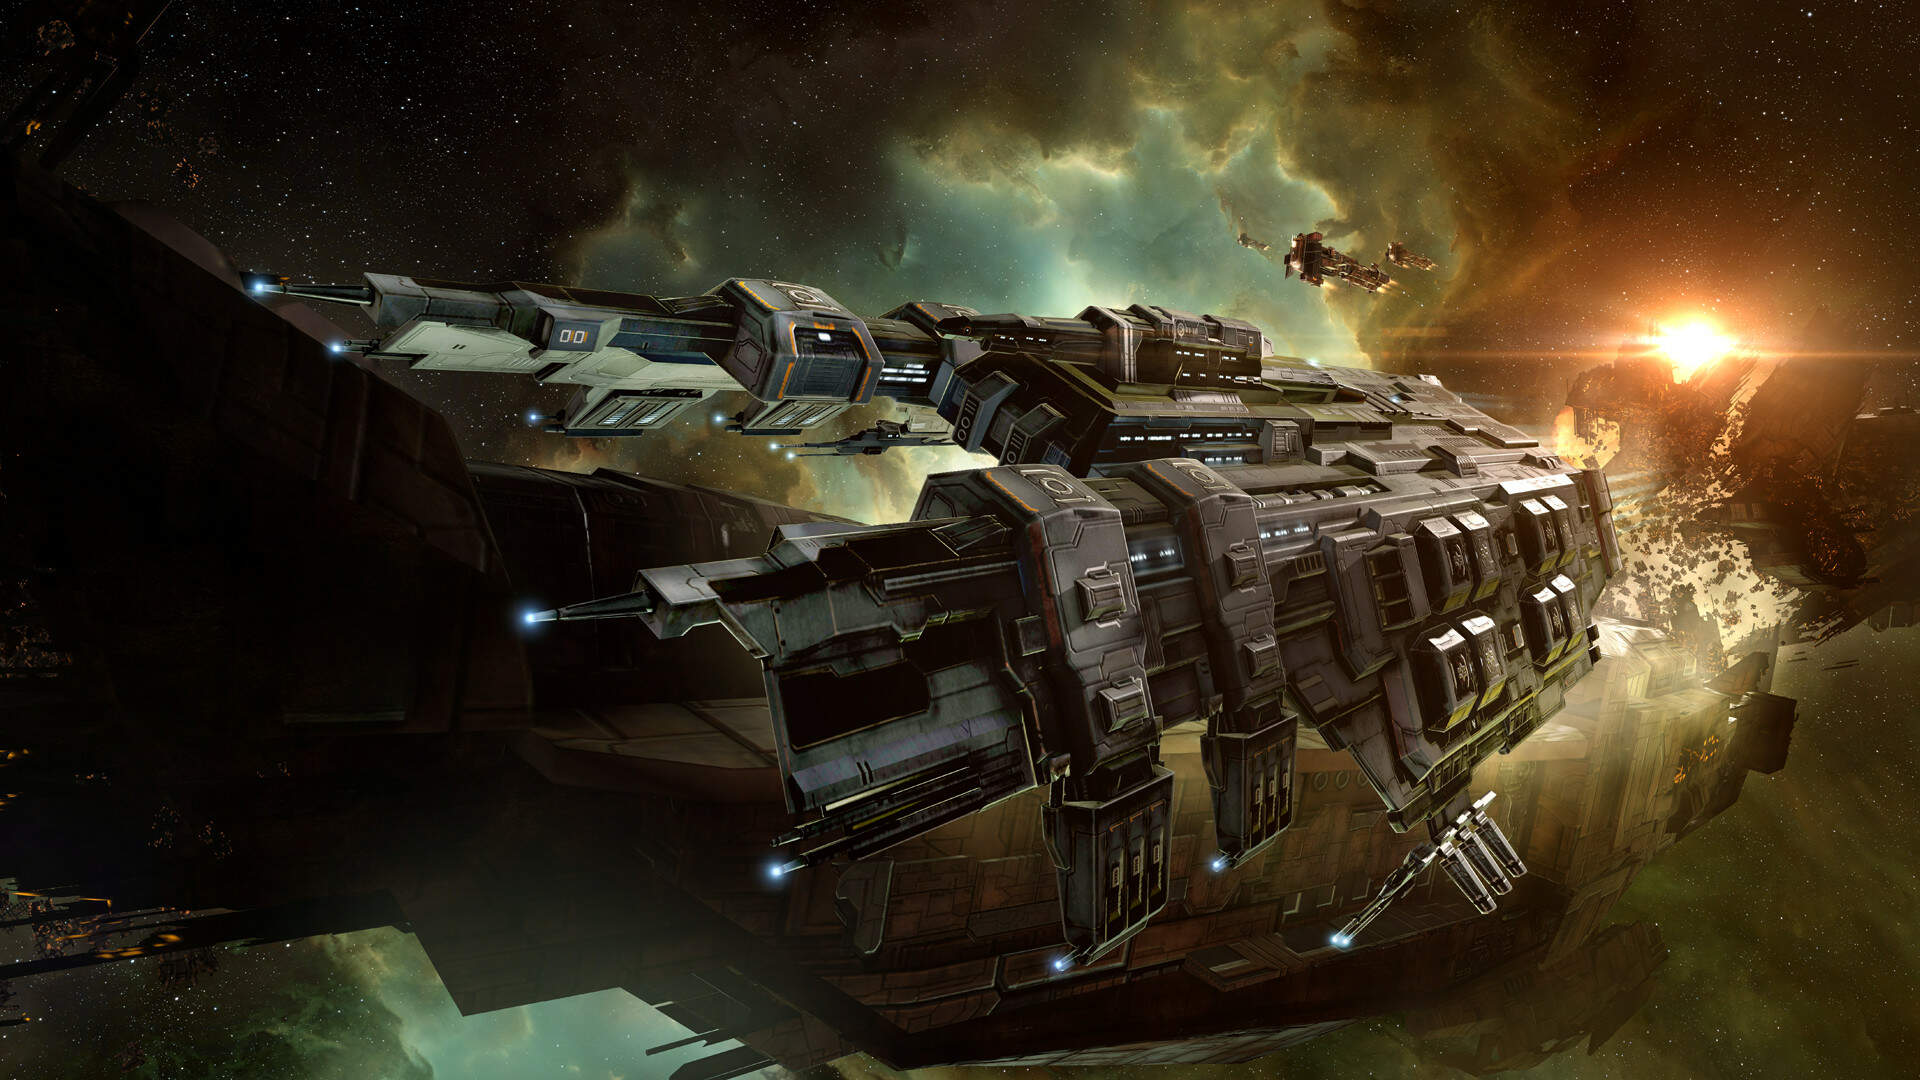 EVE Online Players Are Under Siege From A Massive NPC Armada